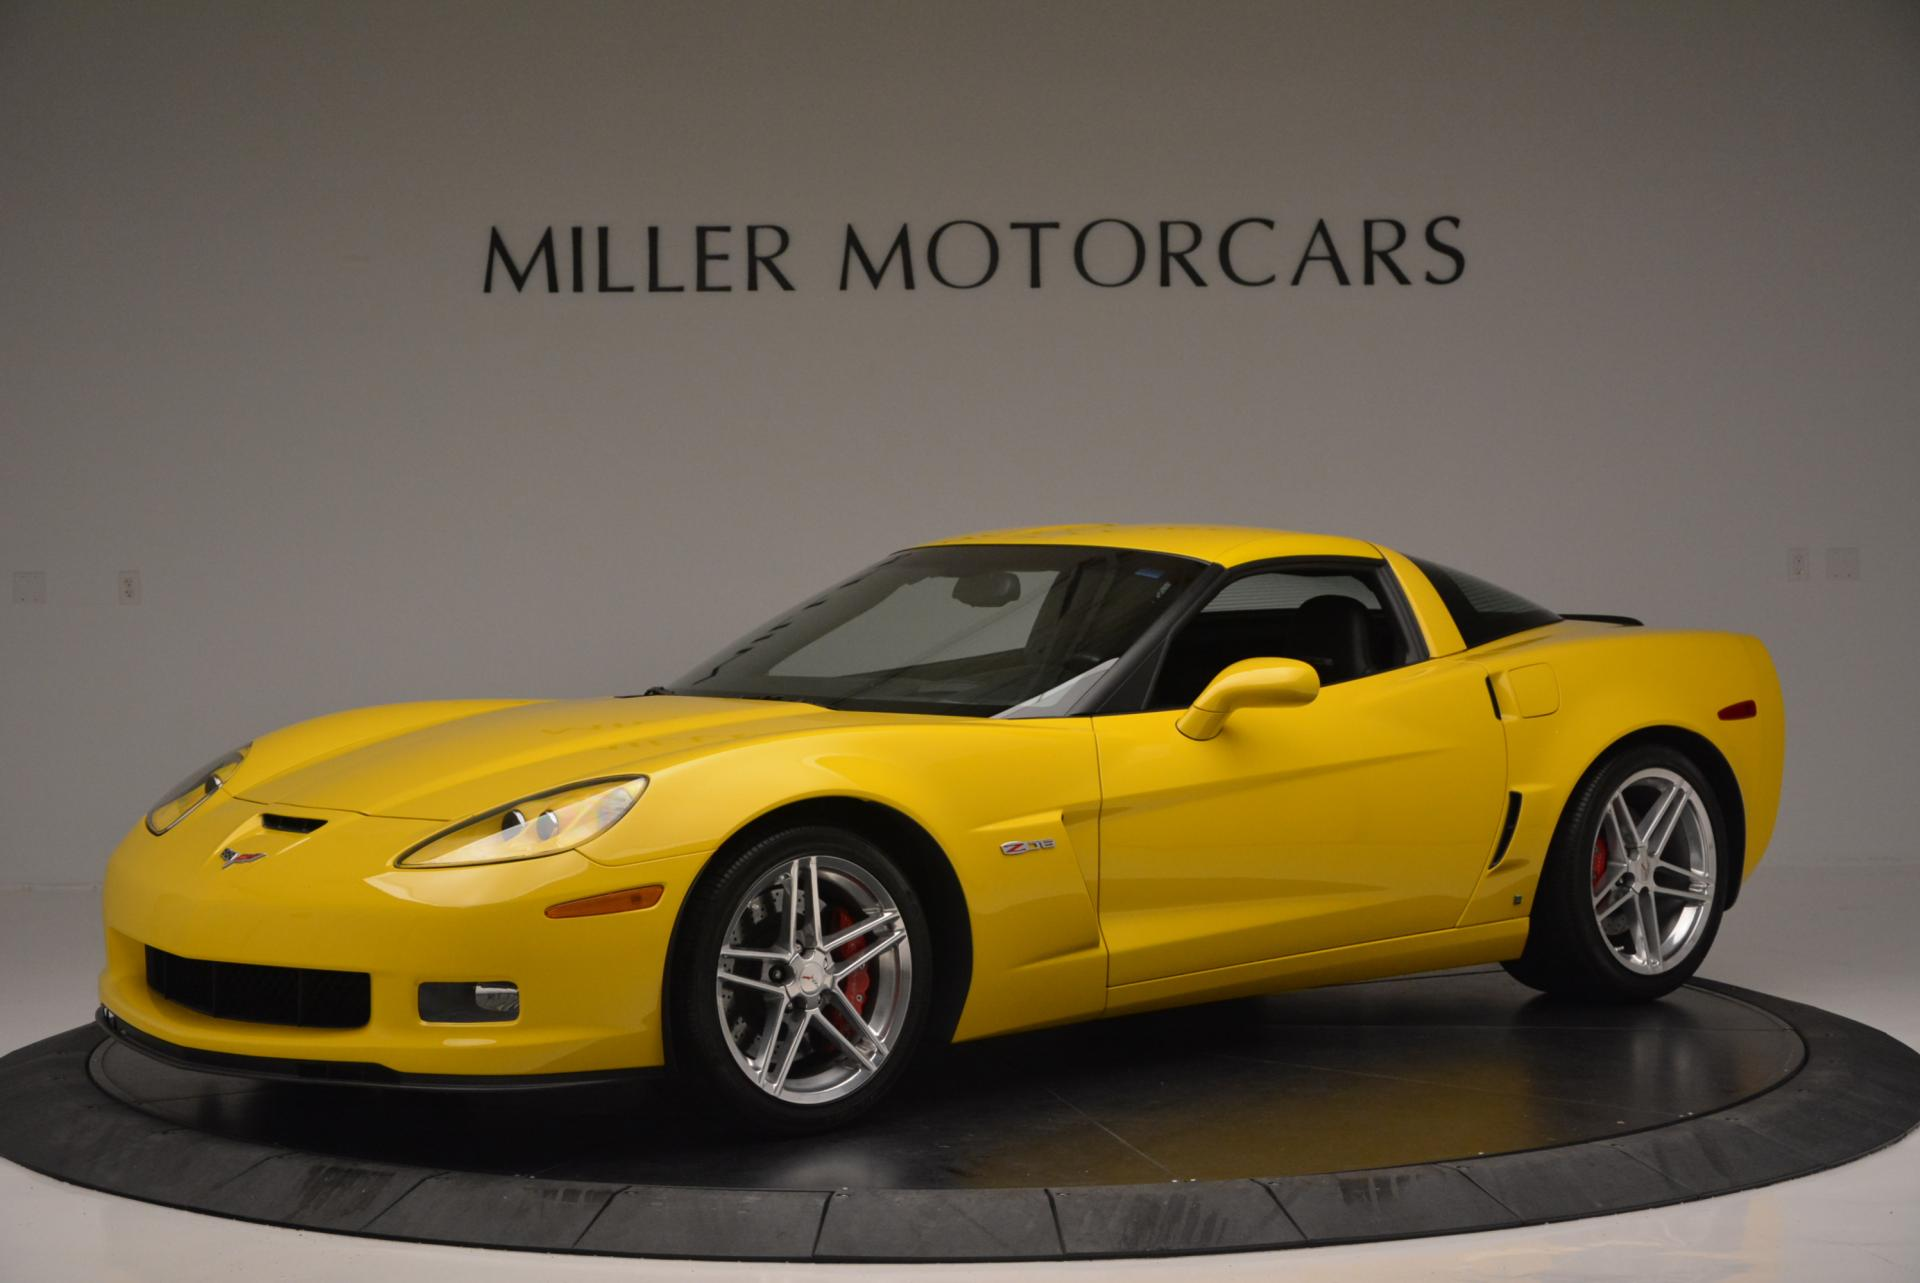 Used 2006 Chevrolet Corvette Z06 Hardtop for sale Sold at Pagani of Greenwich in Greenwich CT 06830 1